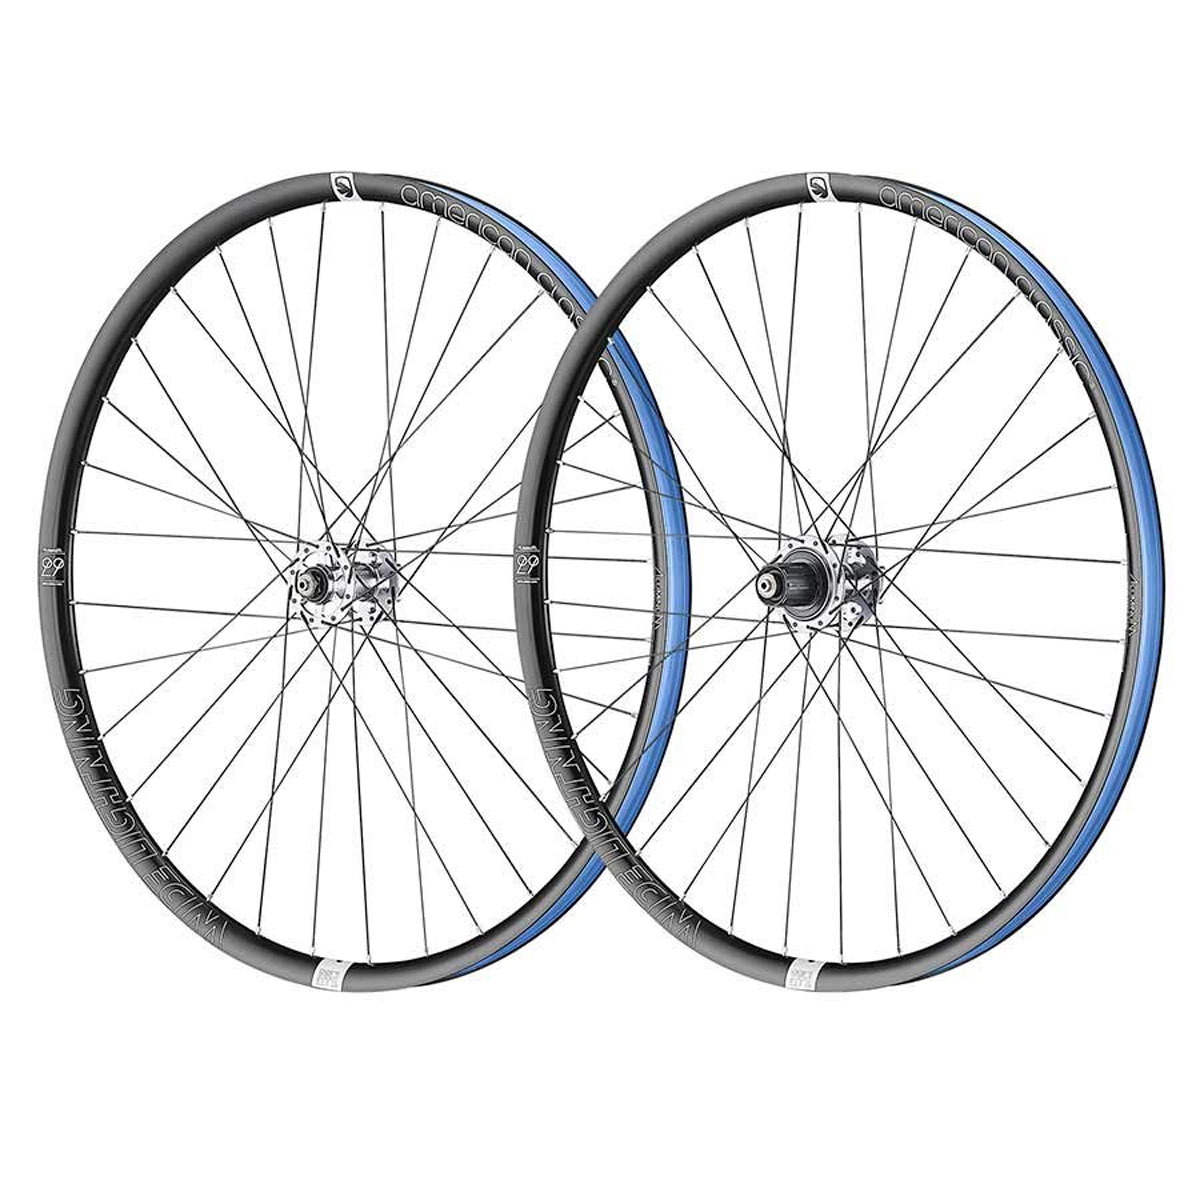 American Classic Wide Lightning Tubeless Ready Bicycle Wheel Set - 29 - 9/10/11 15x100 / 12x142 - 712155792418